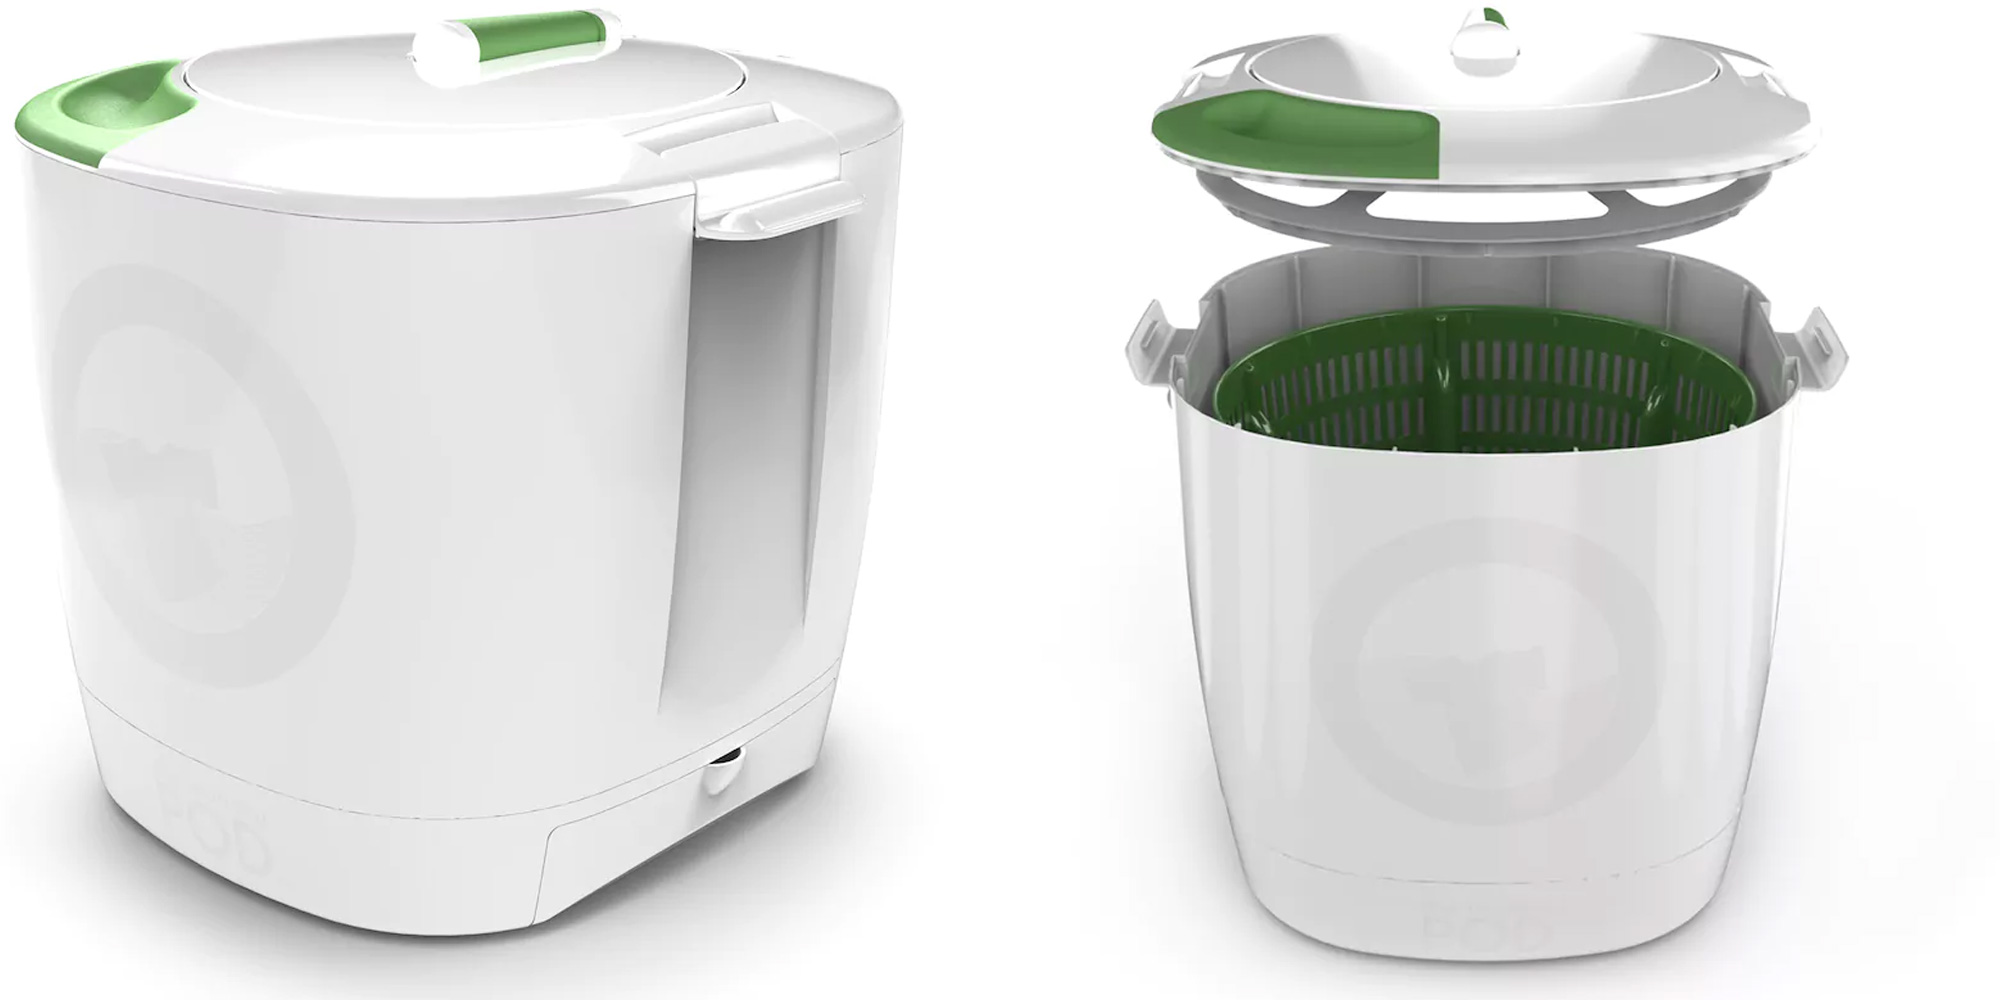 The Laundry POD helps you keep clothes clean without electricity: $56 (Reg. $80+)